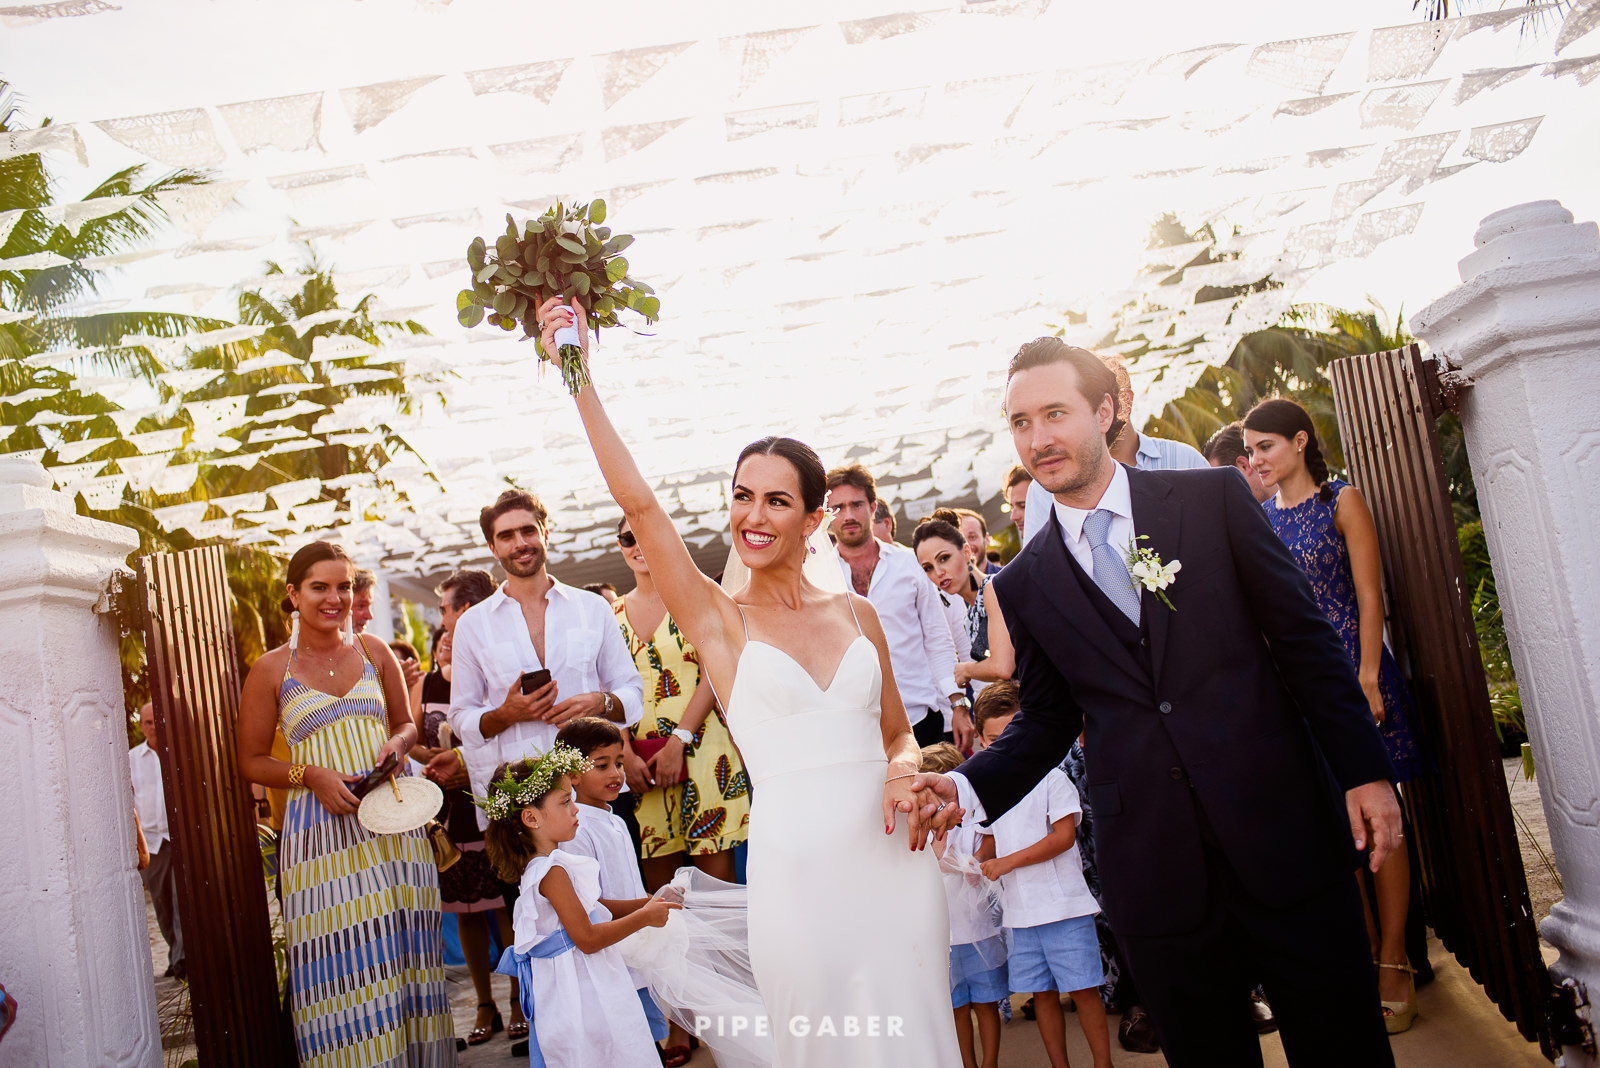 Wedding_phographer_Yucatan_beach_16.JPG